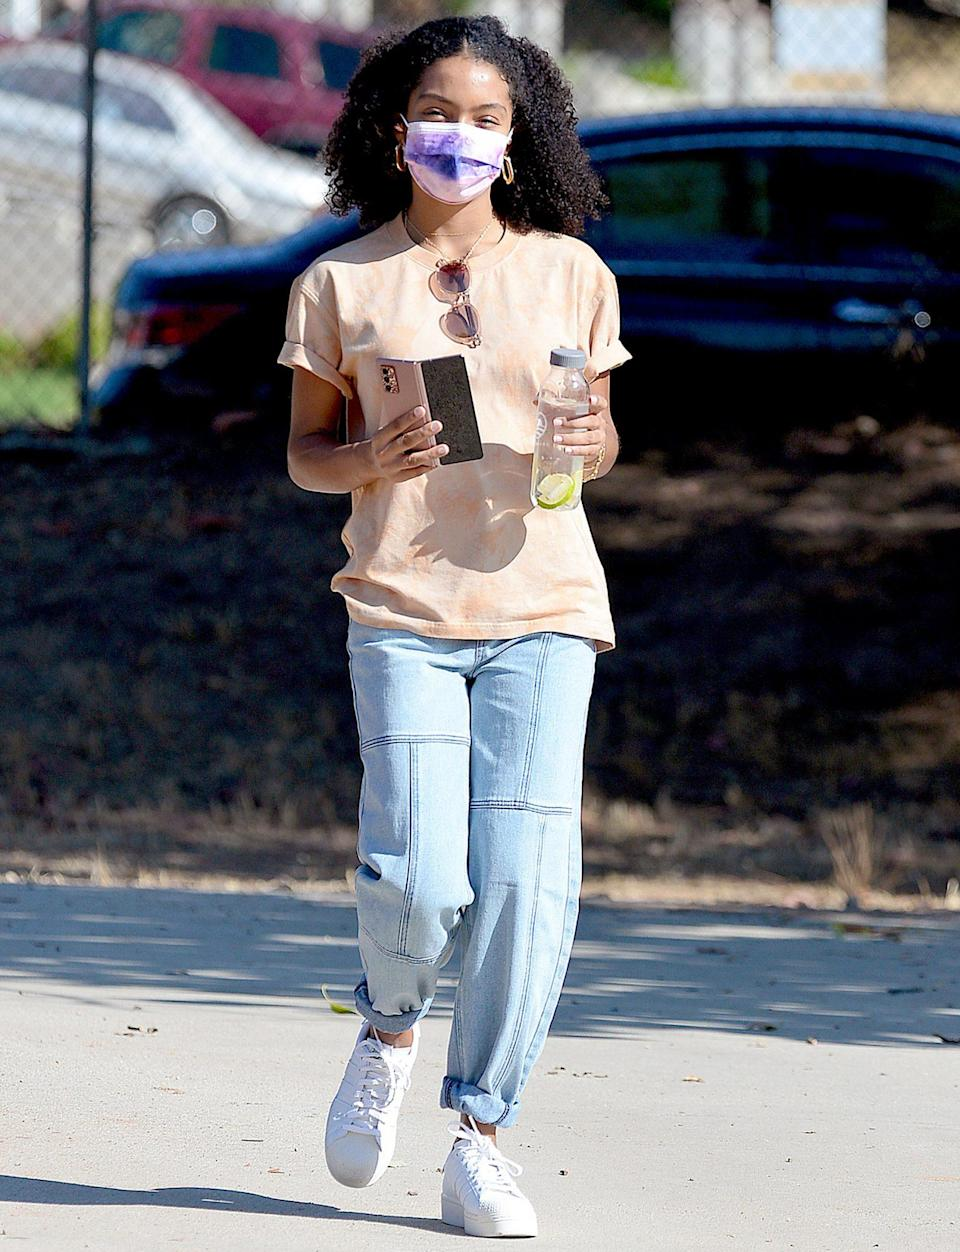 <p>Yara Shahidi steps out wearing a PacSun shirt and jeans while enjoying a day in the park on Monday in L.A. </p>